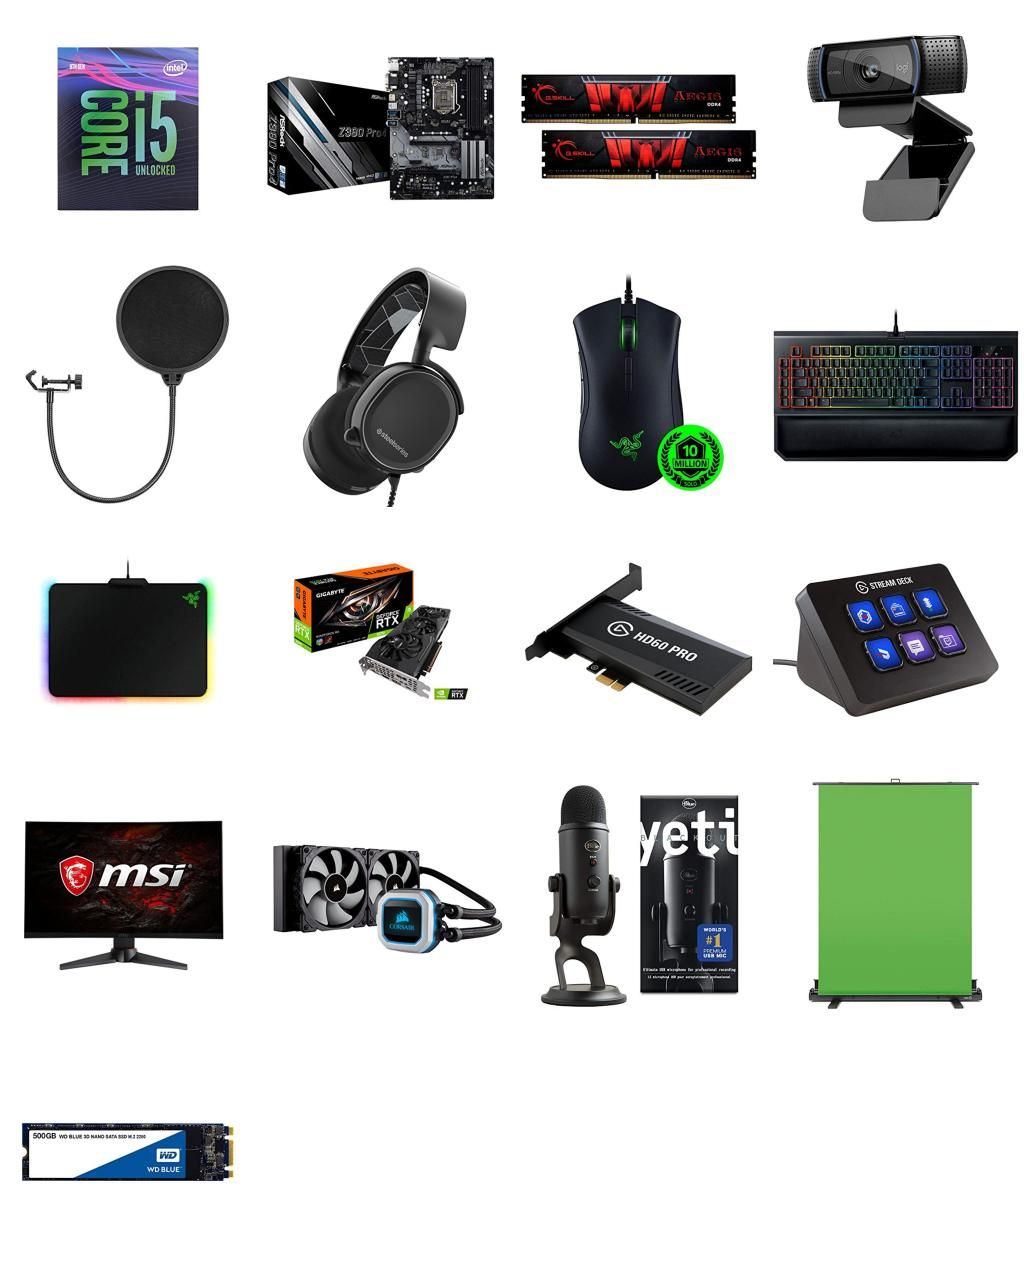 Black Friday Professional Streaming Setup For Youtube Gaming 2019